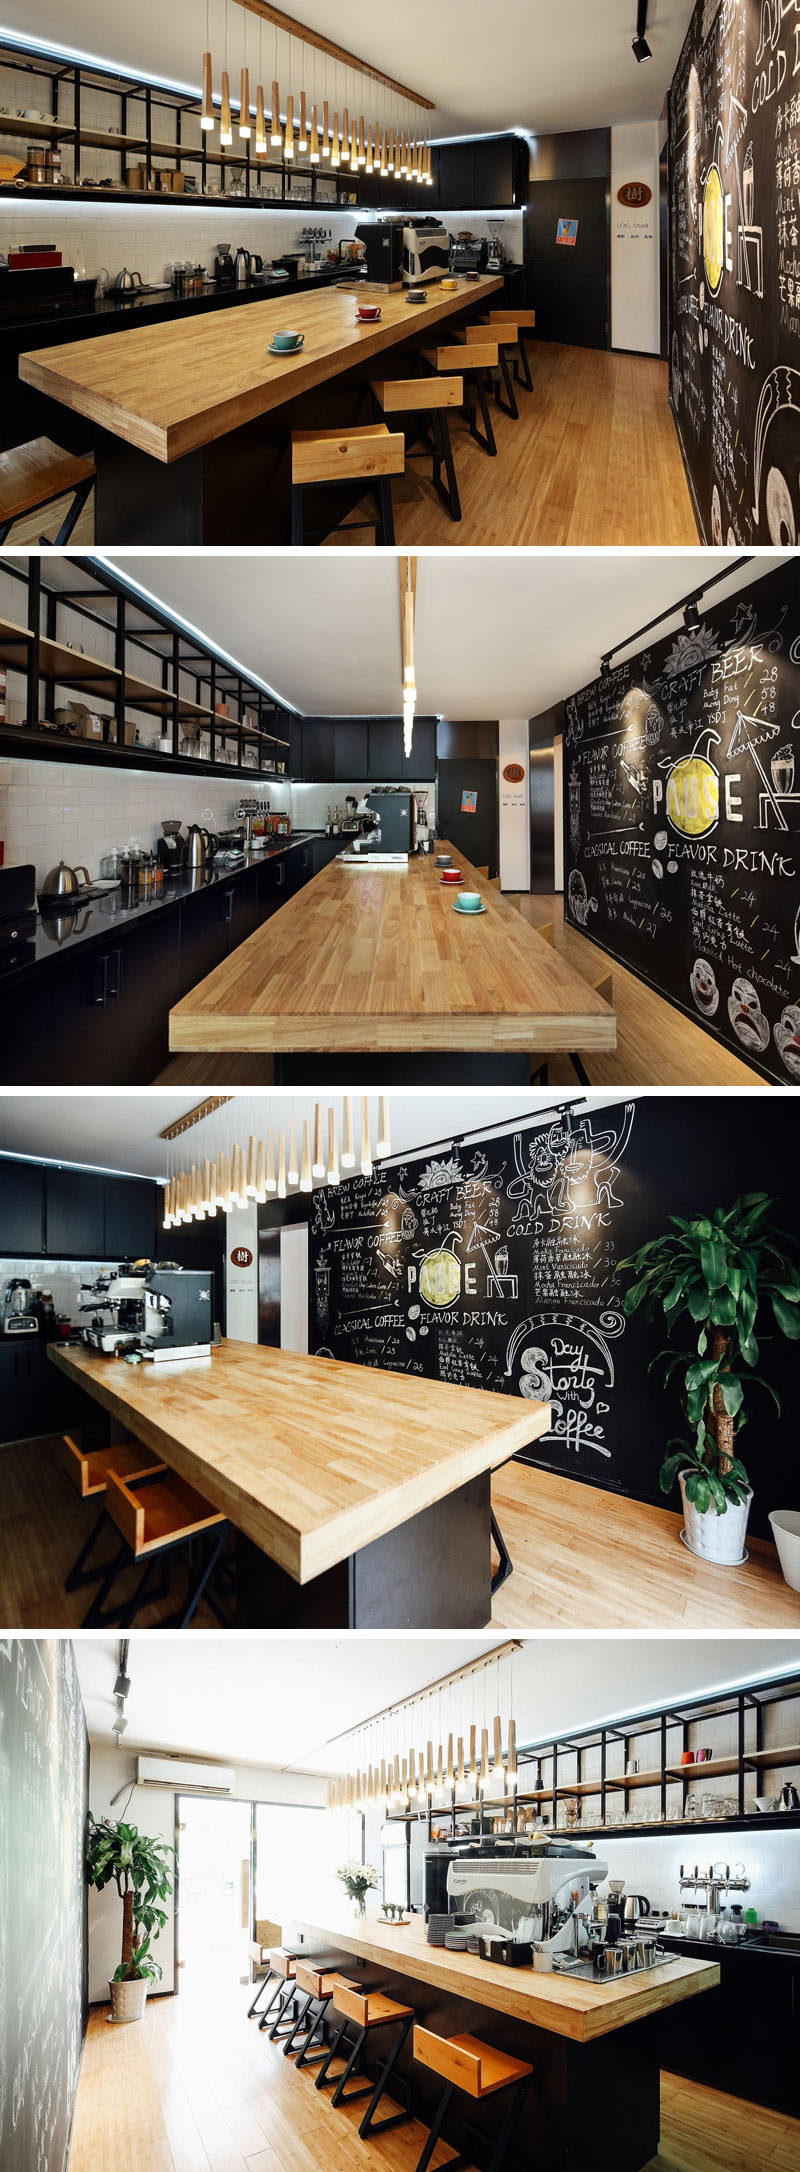 This New Coffee Shop Was Inserted In An Older Apartment